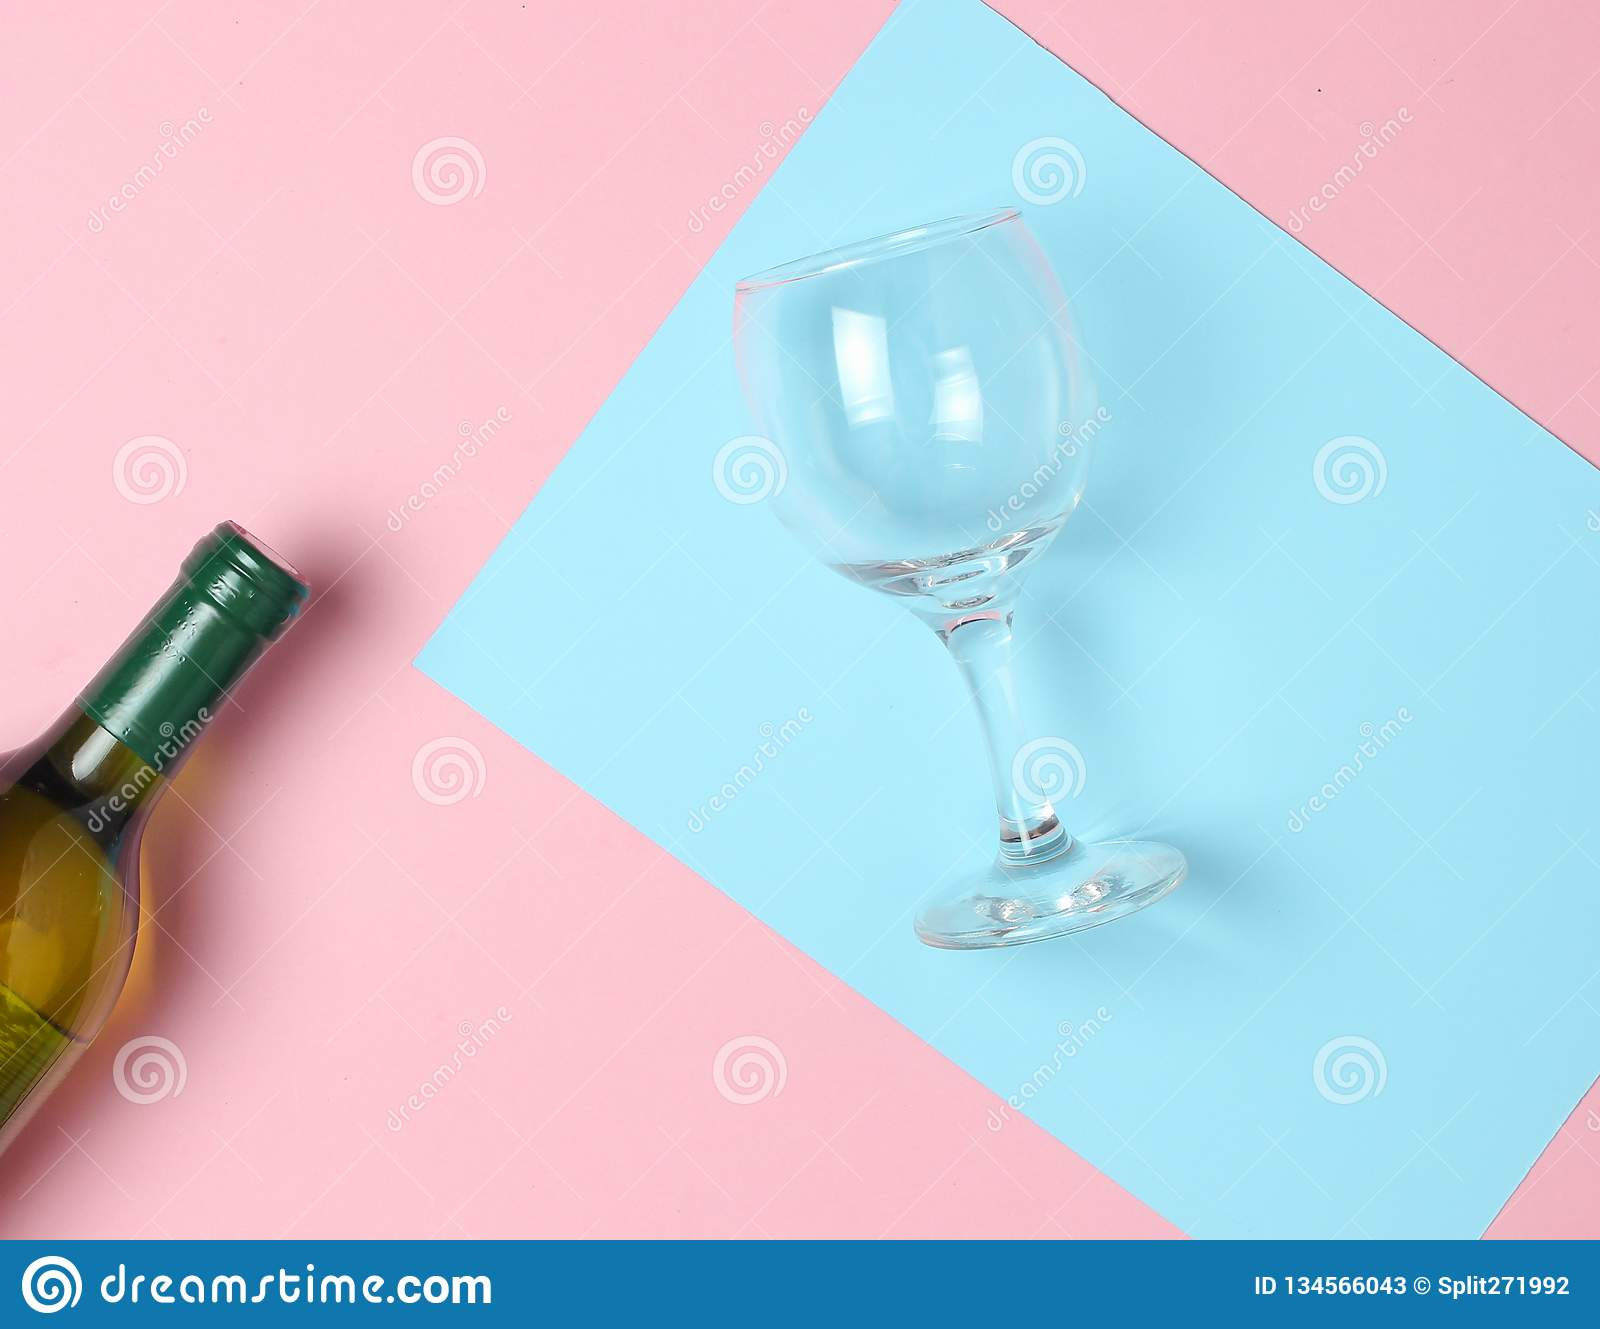 Bottle of wine, glass on a colored pastel background. Top view. Minimalism.